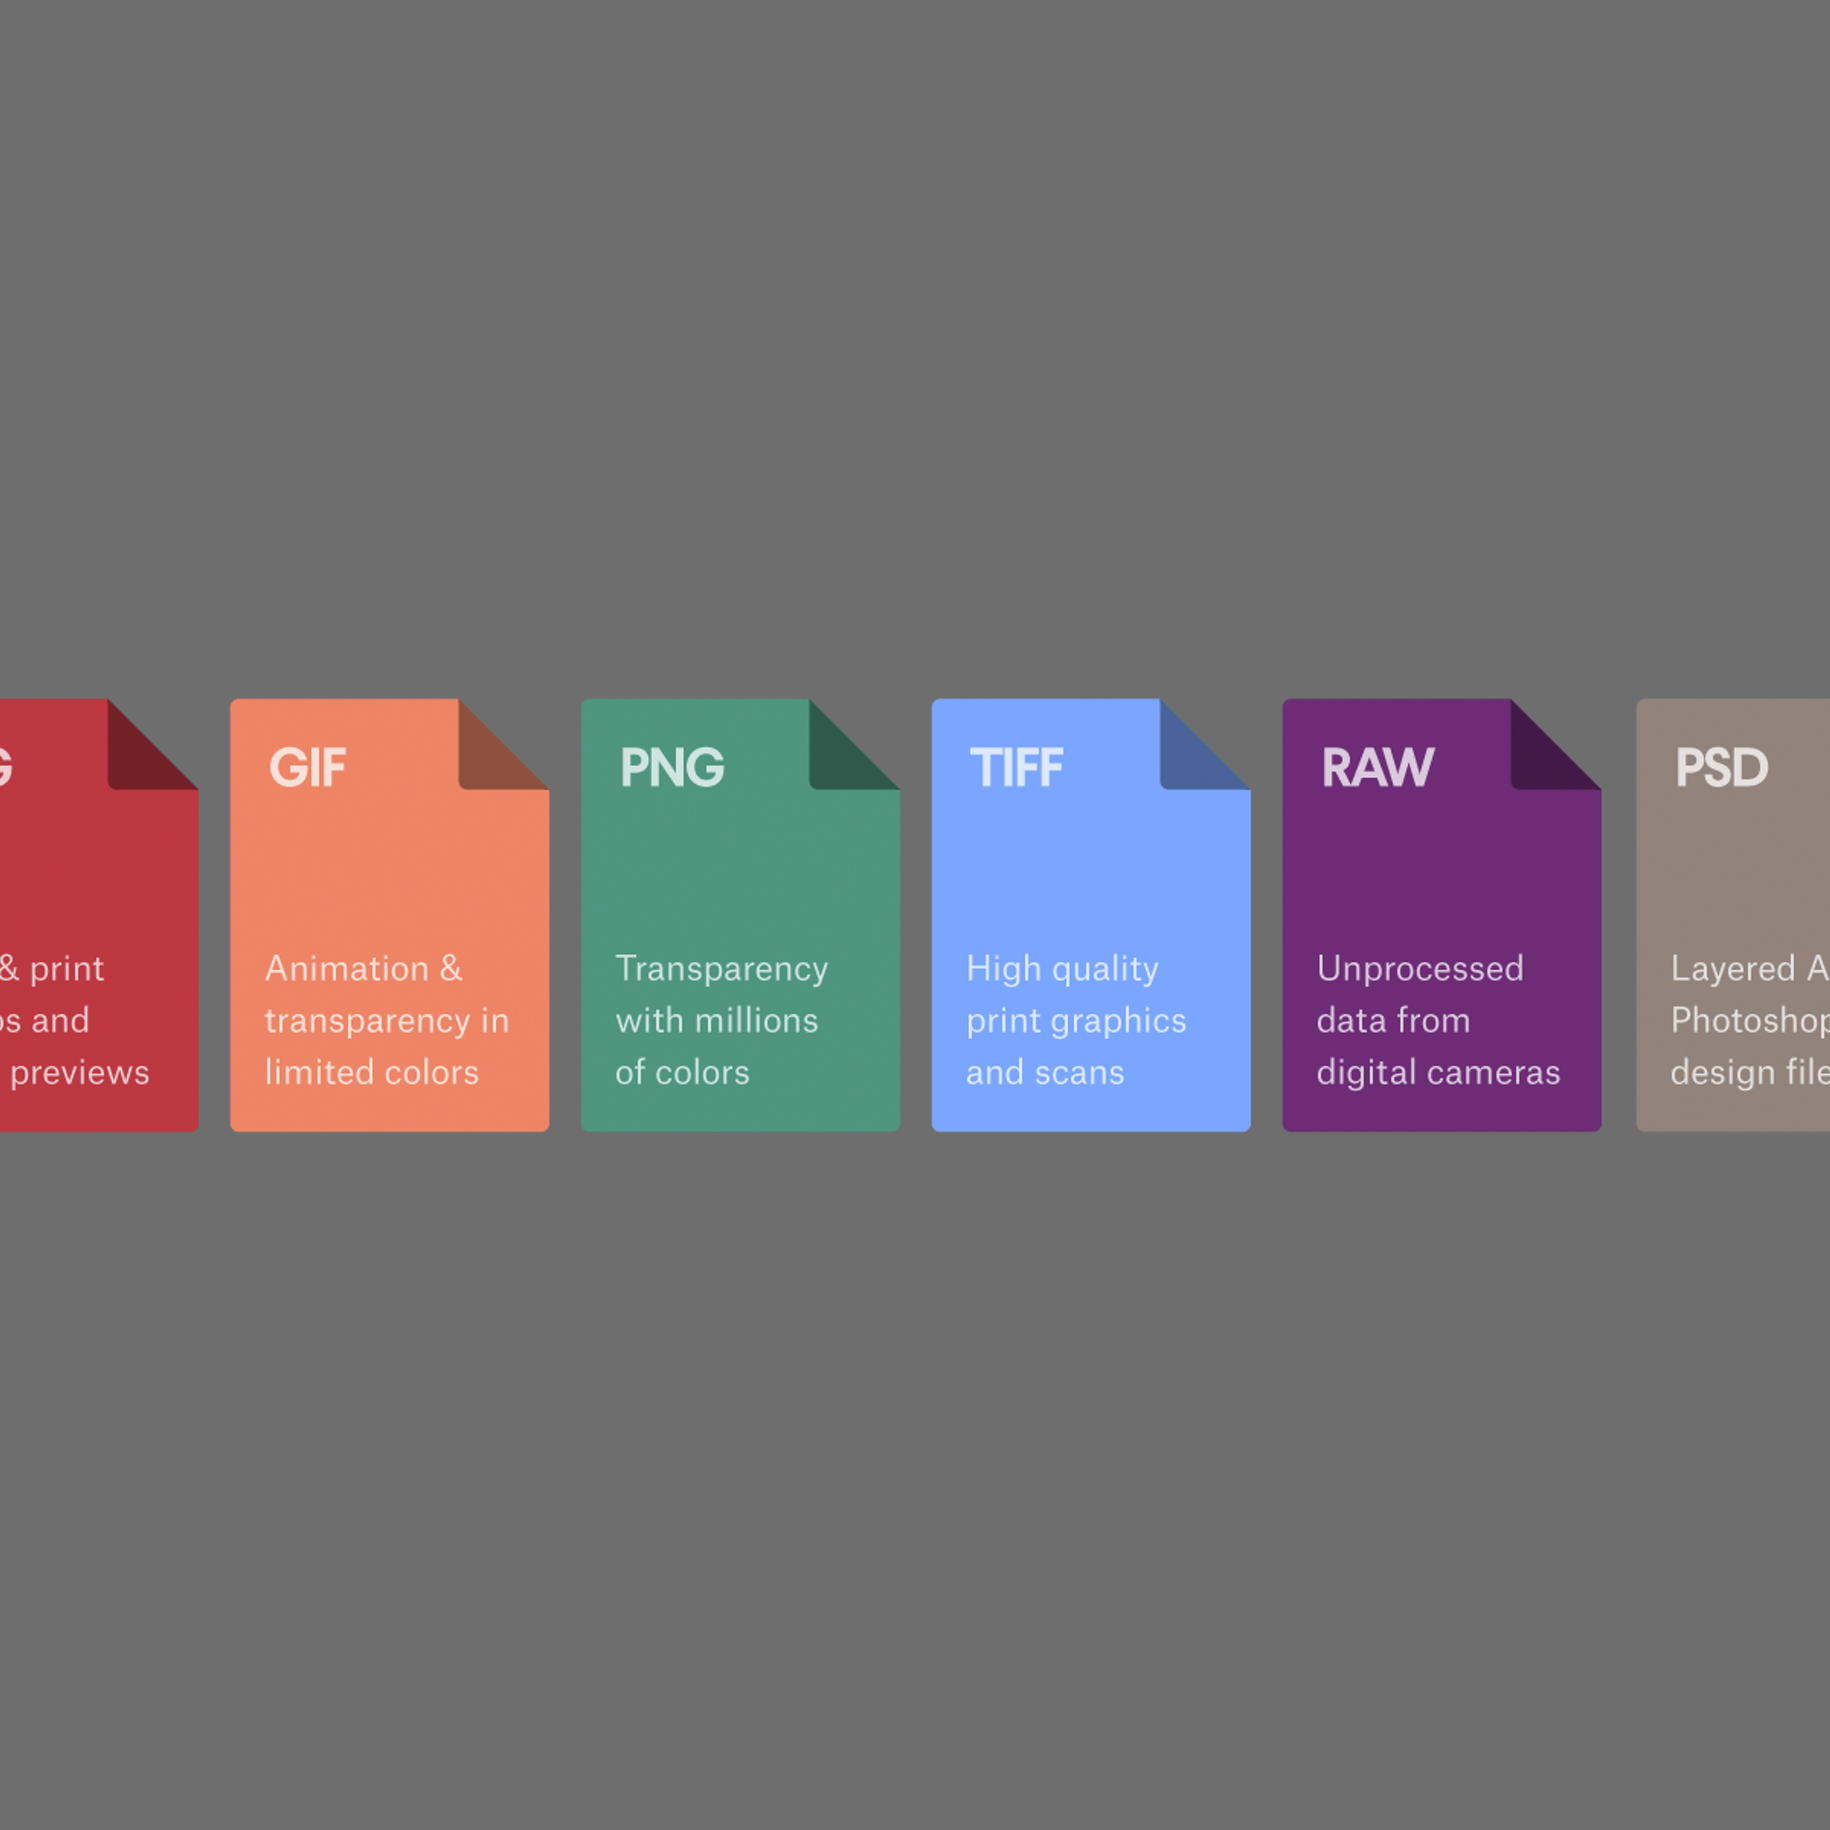 Image file formats: when to use each type of file - 99designs